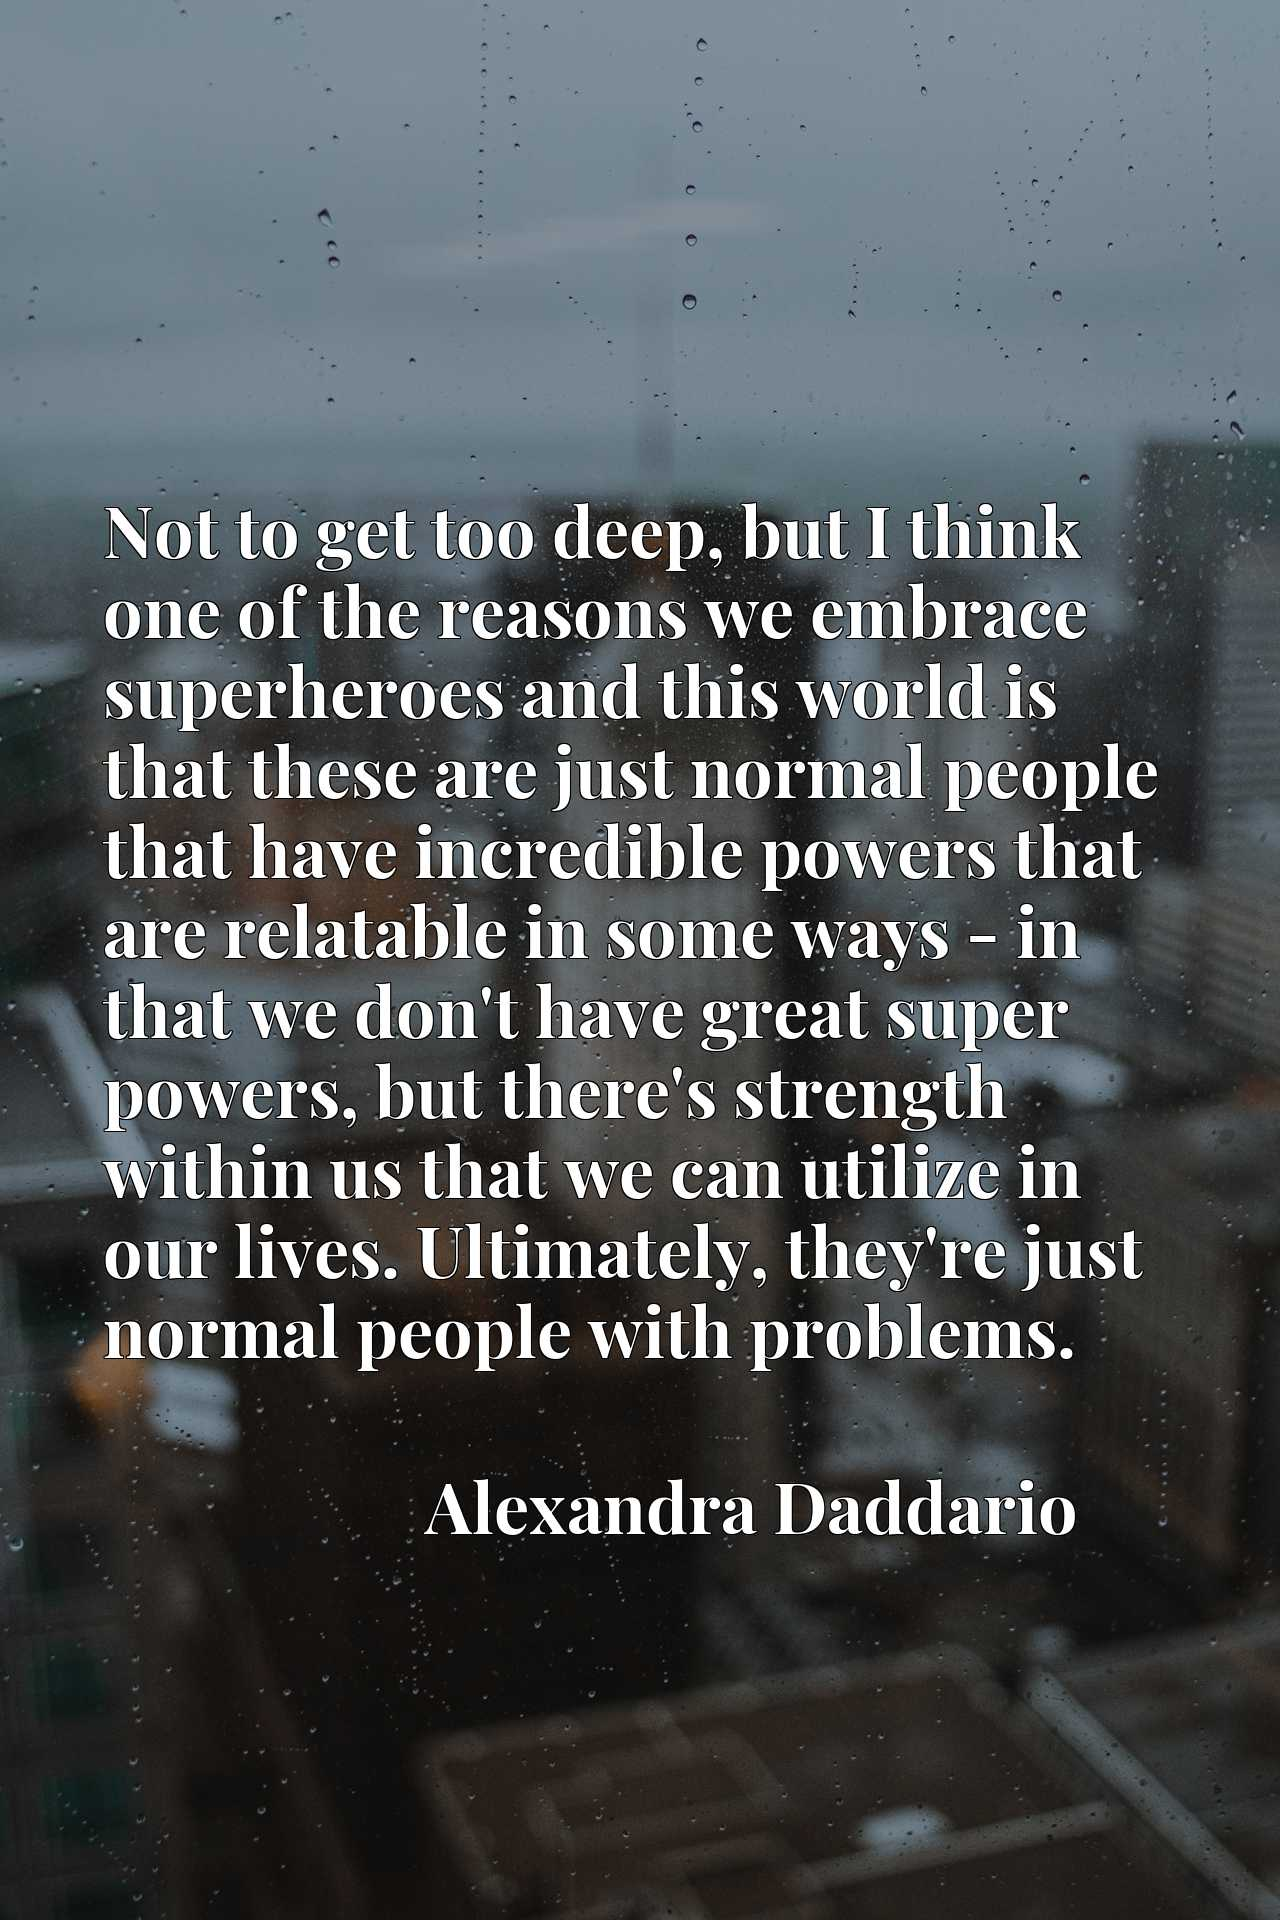 Not to get too deep, but I think one of the reasons we embrace superheroes and this world is that these are just normal people that have incredible powers that are relatable in some ways - in that we don't have great super powers, but there's strength within us that we can utilize in our lives. Ultimately, they're just normal people with problems.